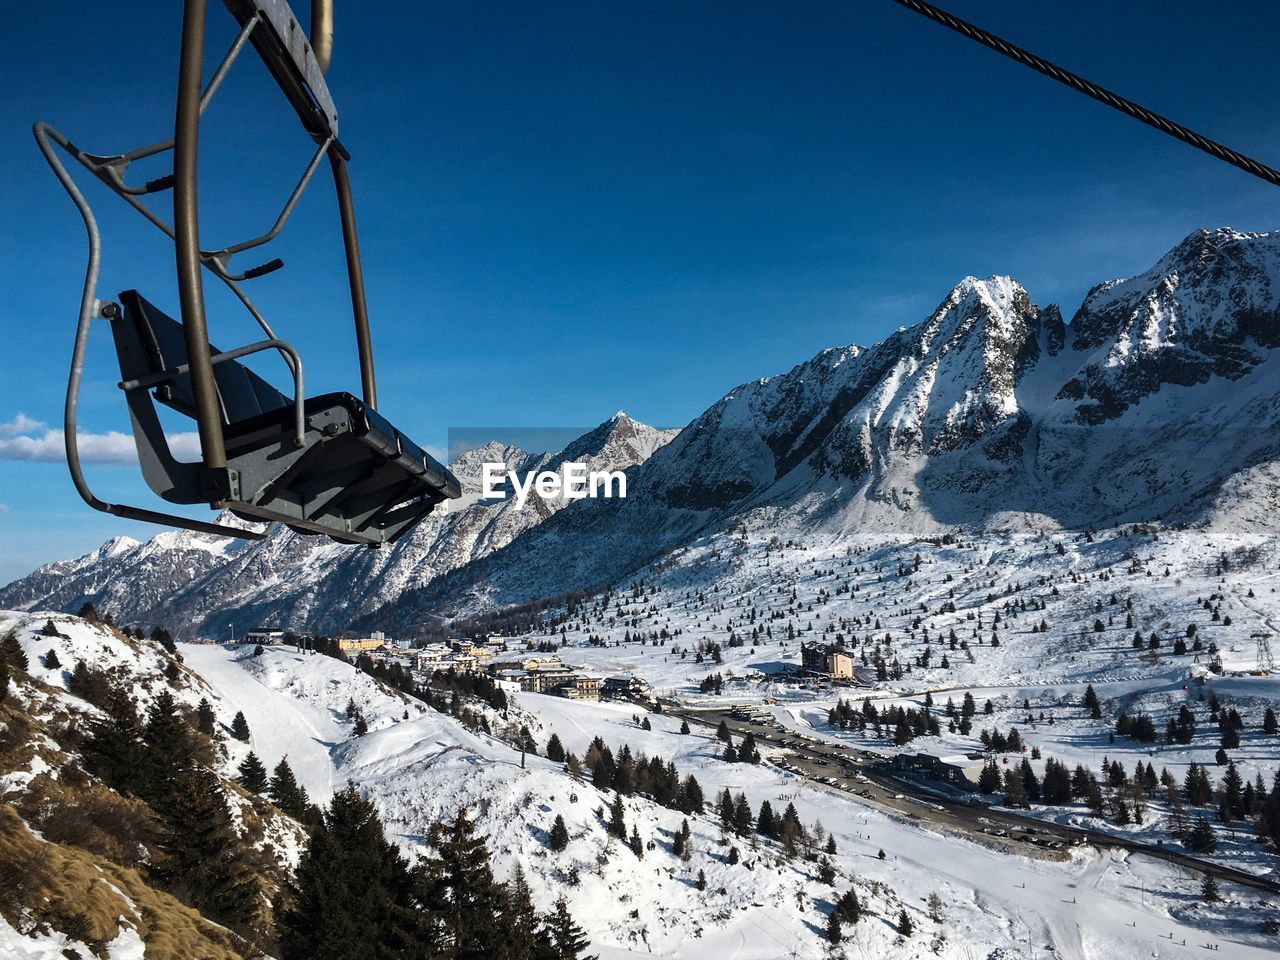 cold temperature, winter, snow, mountain, beauty in nature, snowcapped mountain, scenics - nature, cable car, nature, ski lift, day, sky, white color, mountain range, transportation, covering, non-urban scene, mode of transportation, tranquil scene, no people, outdoors